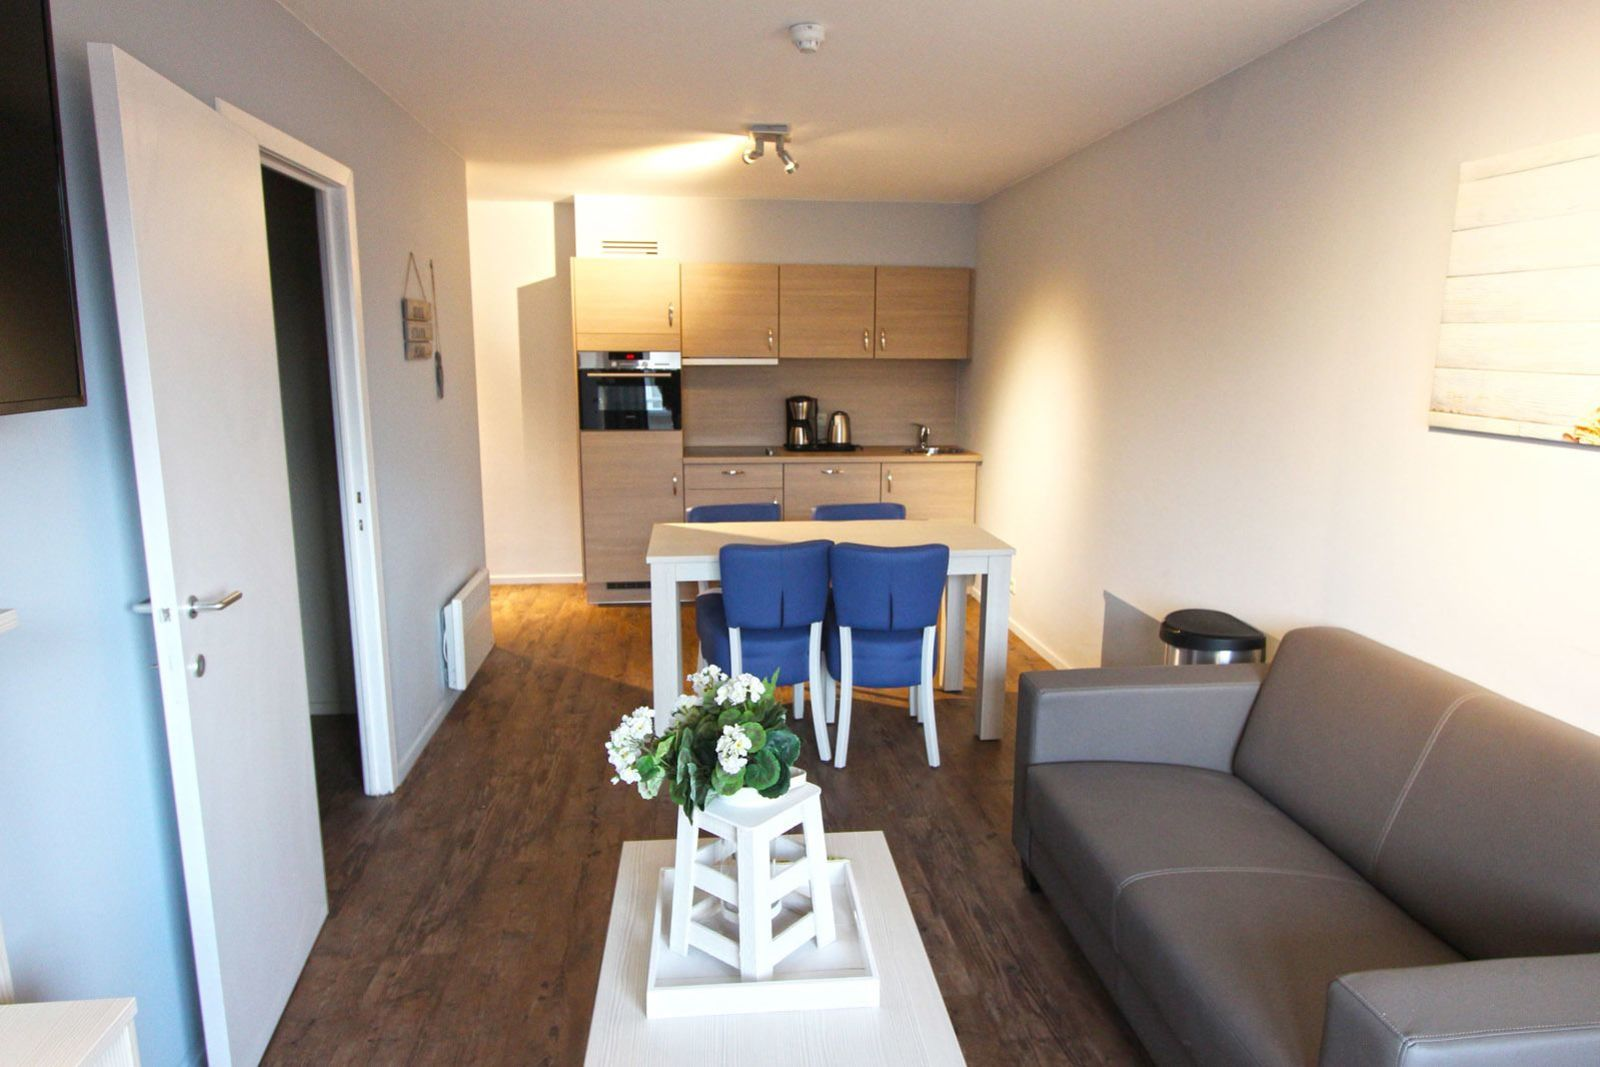 New Holiday Suite for 4 people at sunside